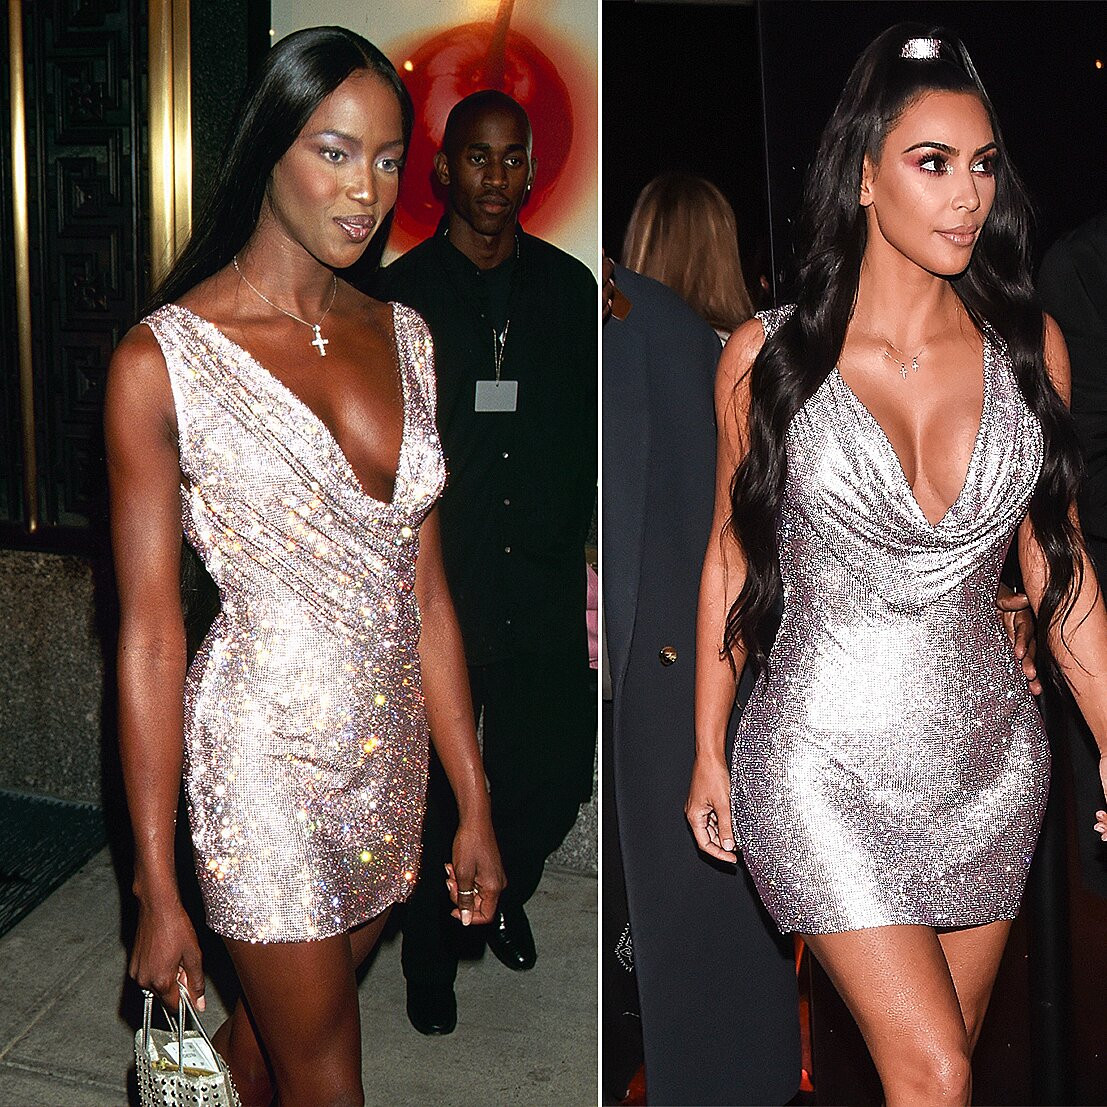 Kim Kardashian and Naomi Campbell 'Laugh' at Rumors that She's Been Copying the Model's Looks | PEOPLE.com